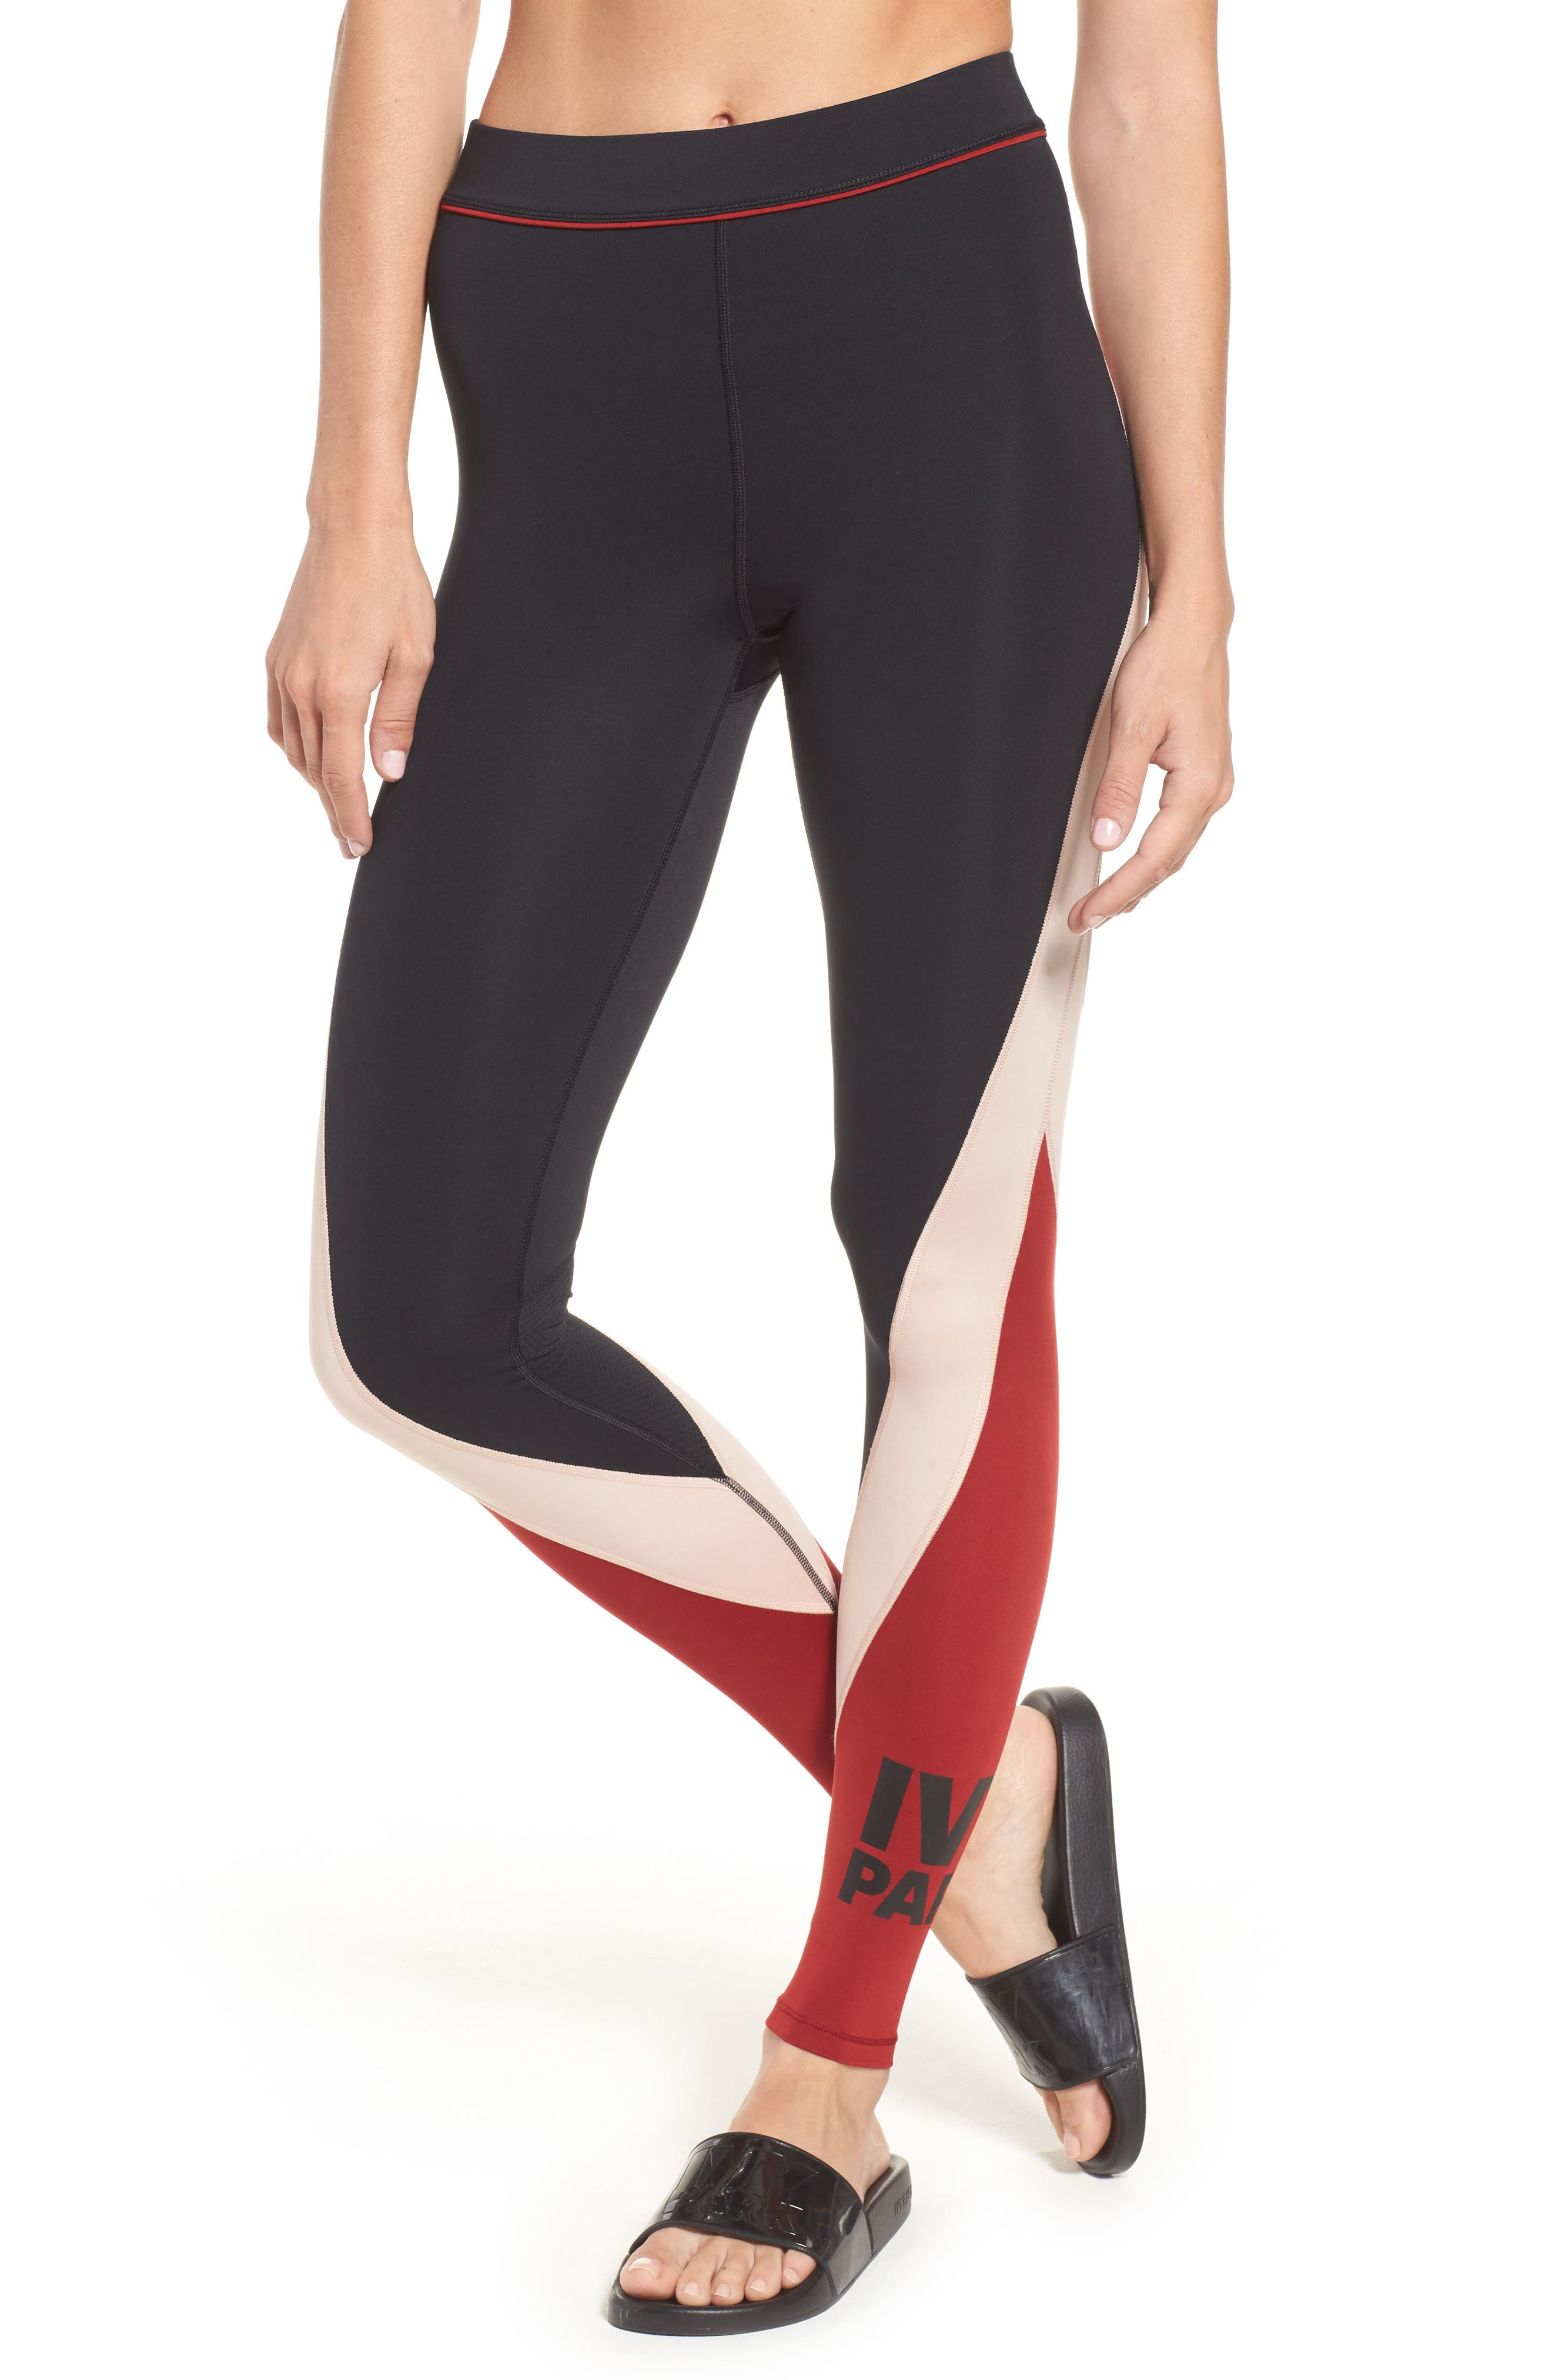 Alternate Image 1 Selected - IVY PARK® Colorblock Mid Rise Ankle Leggings